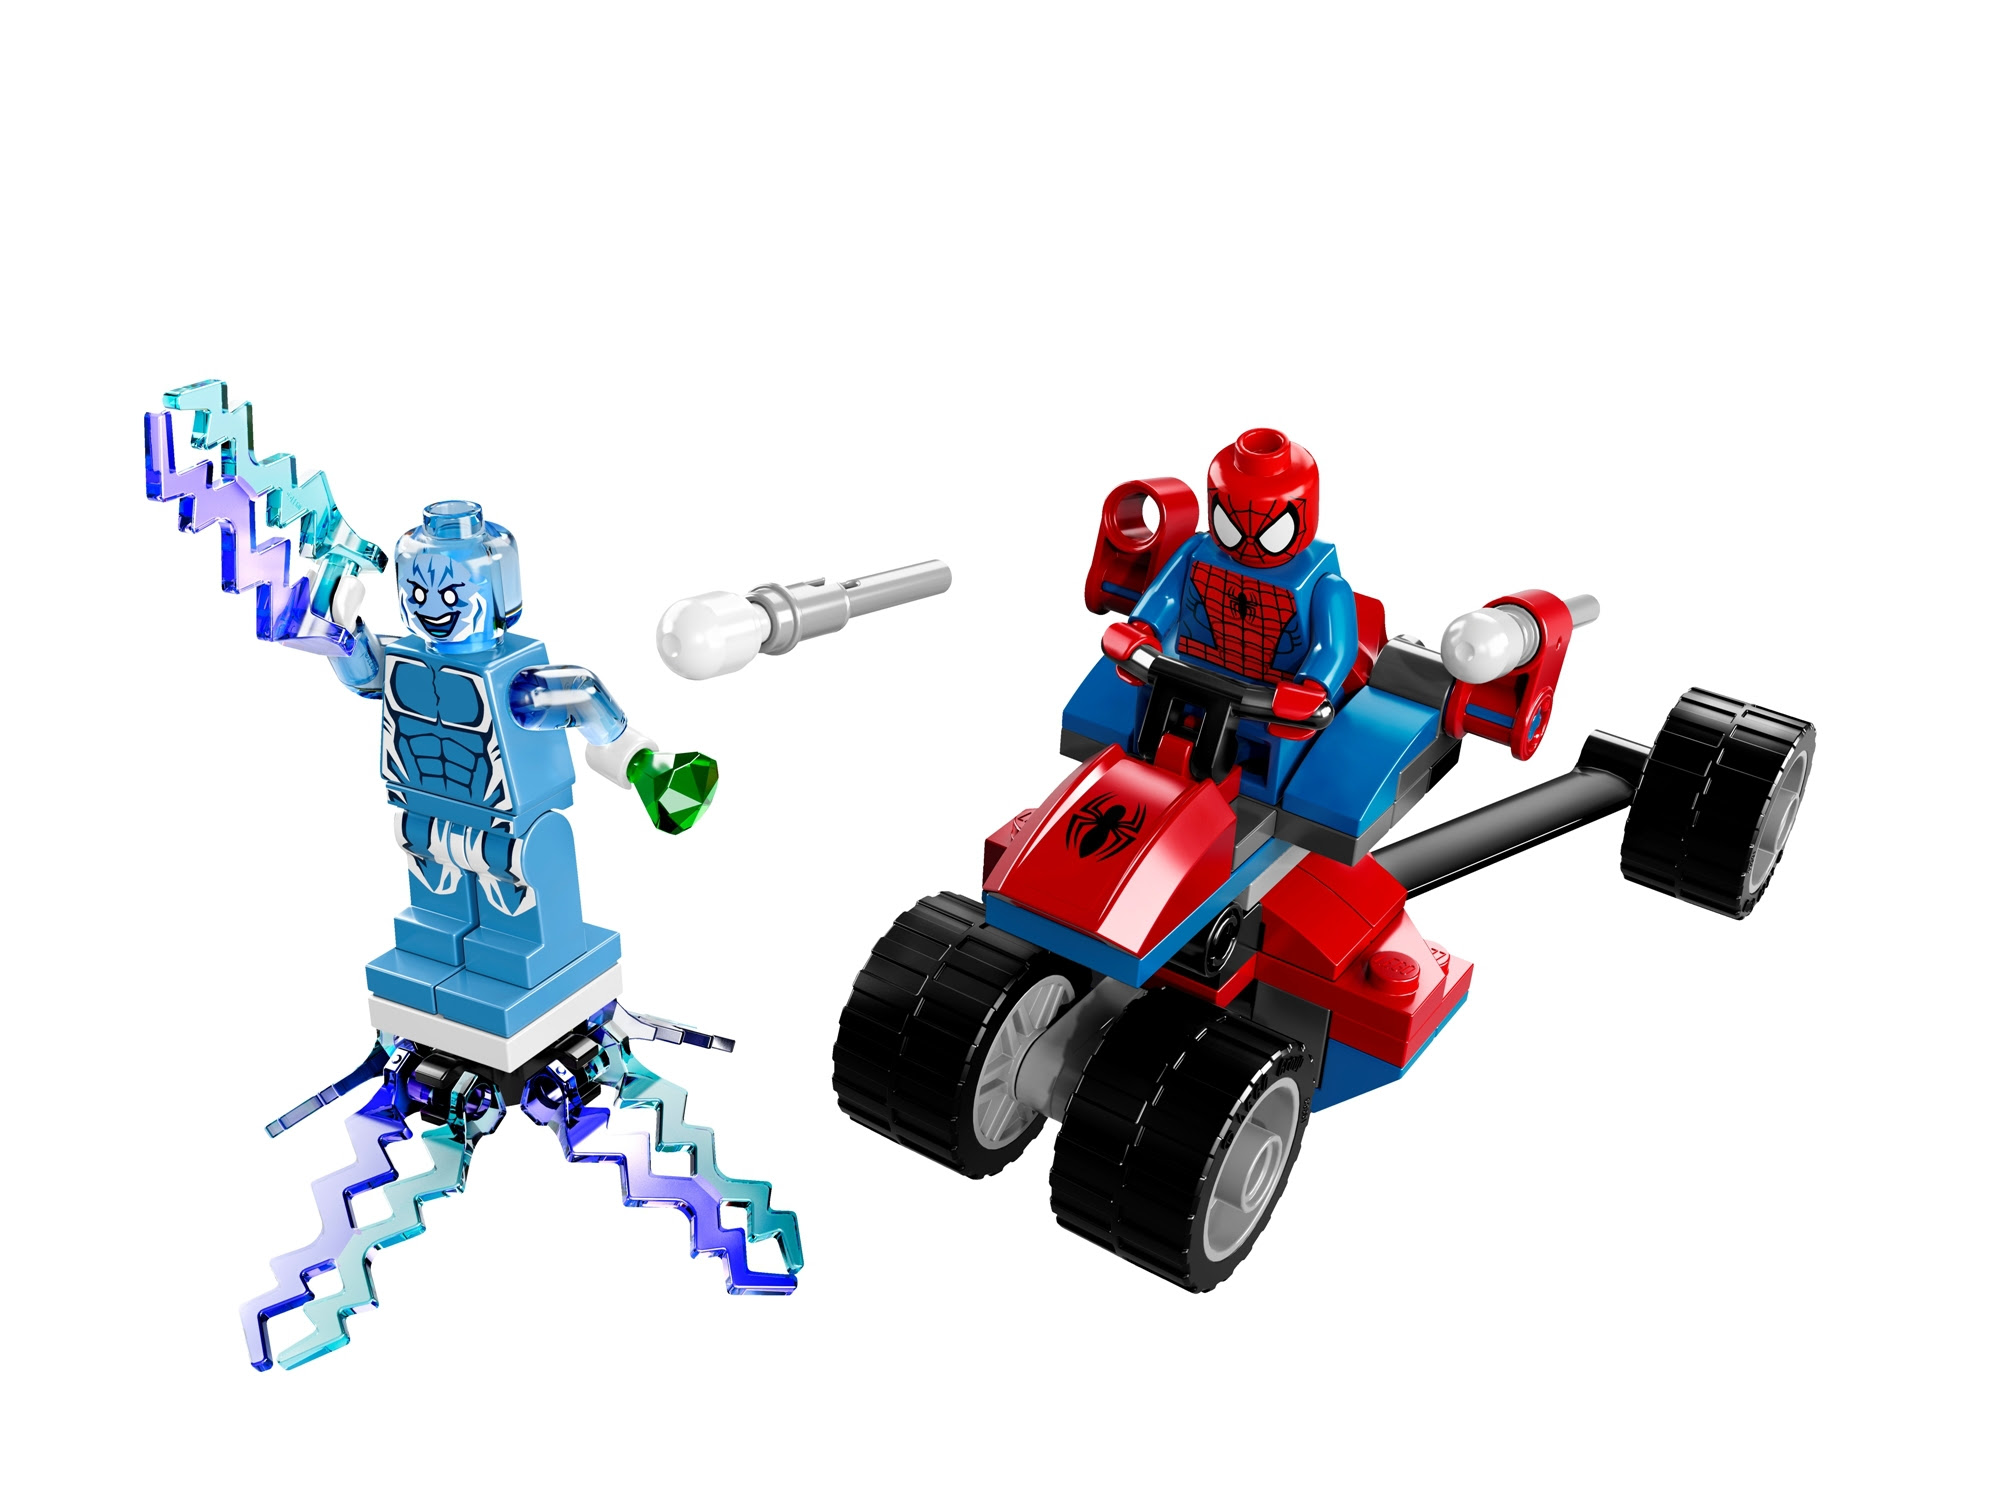 http://img1.wikia.nocookie.net/__cb20131214182410/lego/images/d/d1/Trike2.jpg